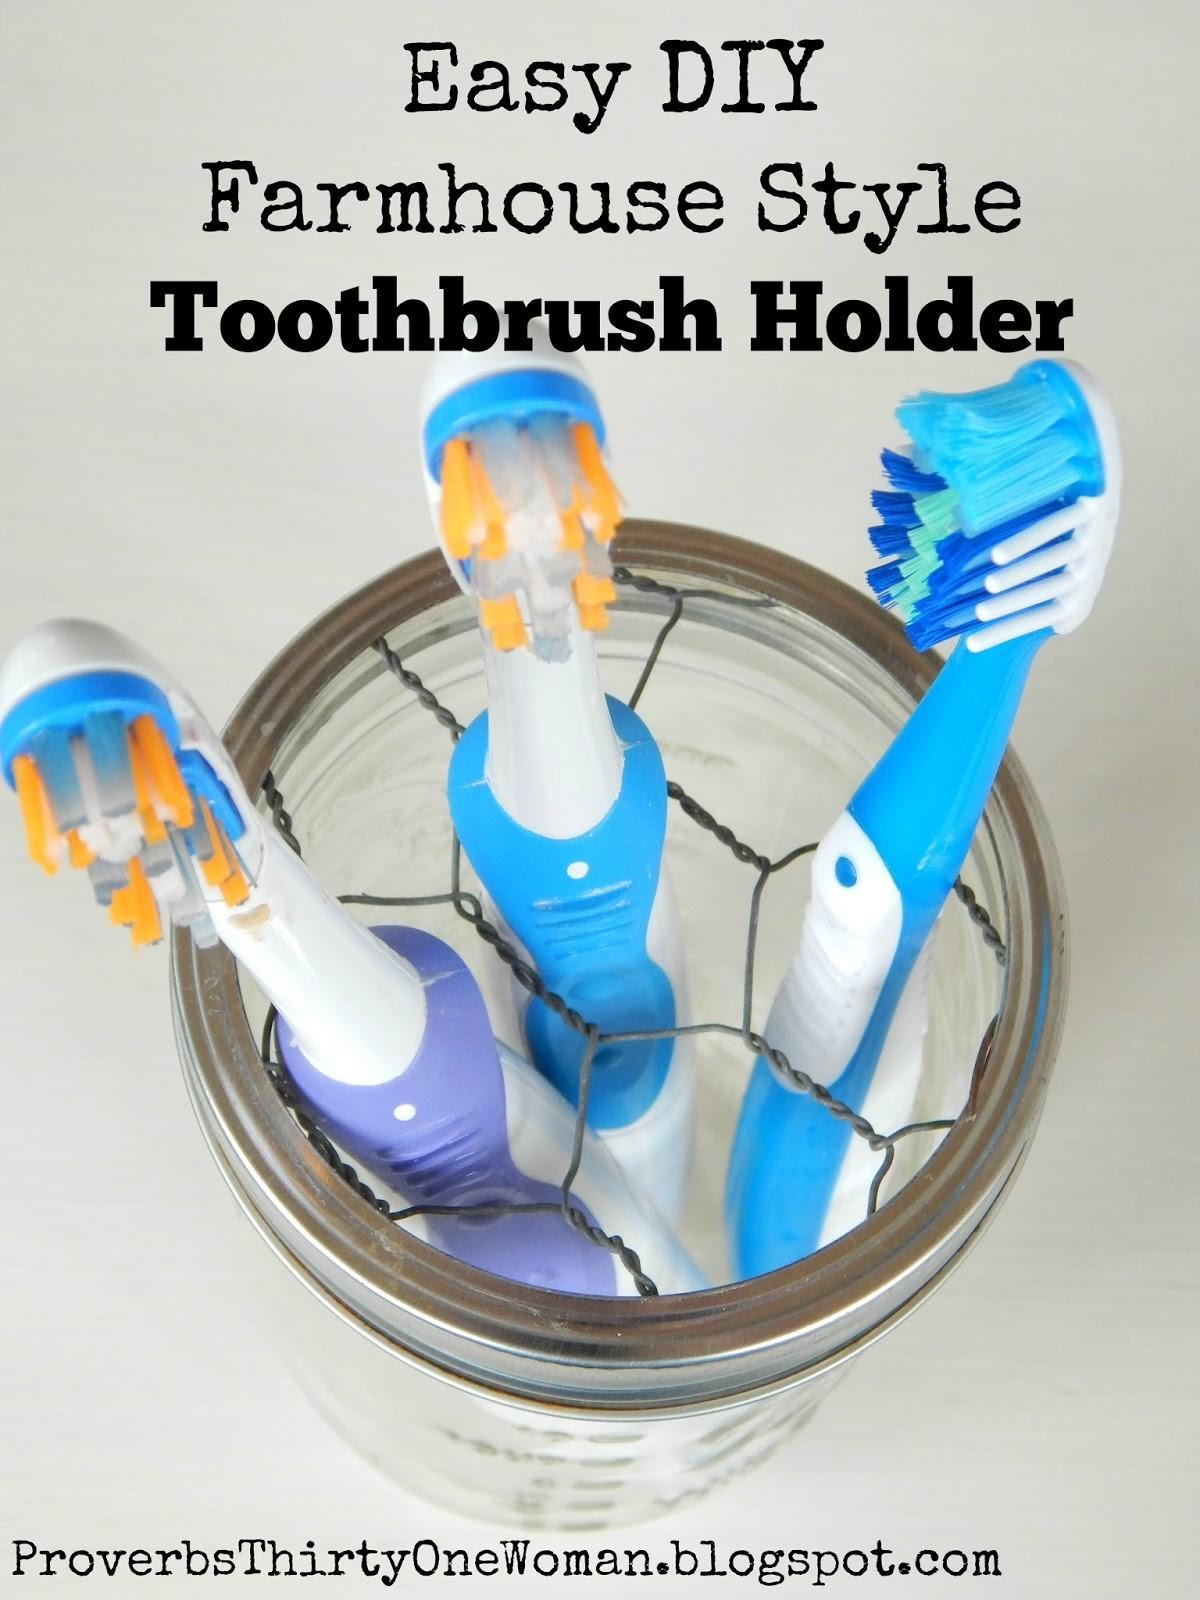 Easy Diy Farmhouse Style Toothbrush Holder Proverbs Woman